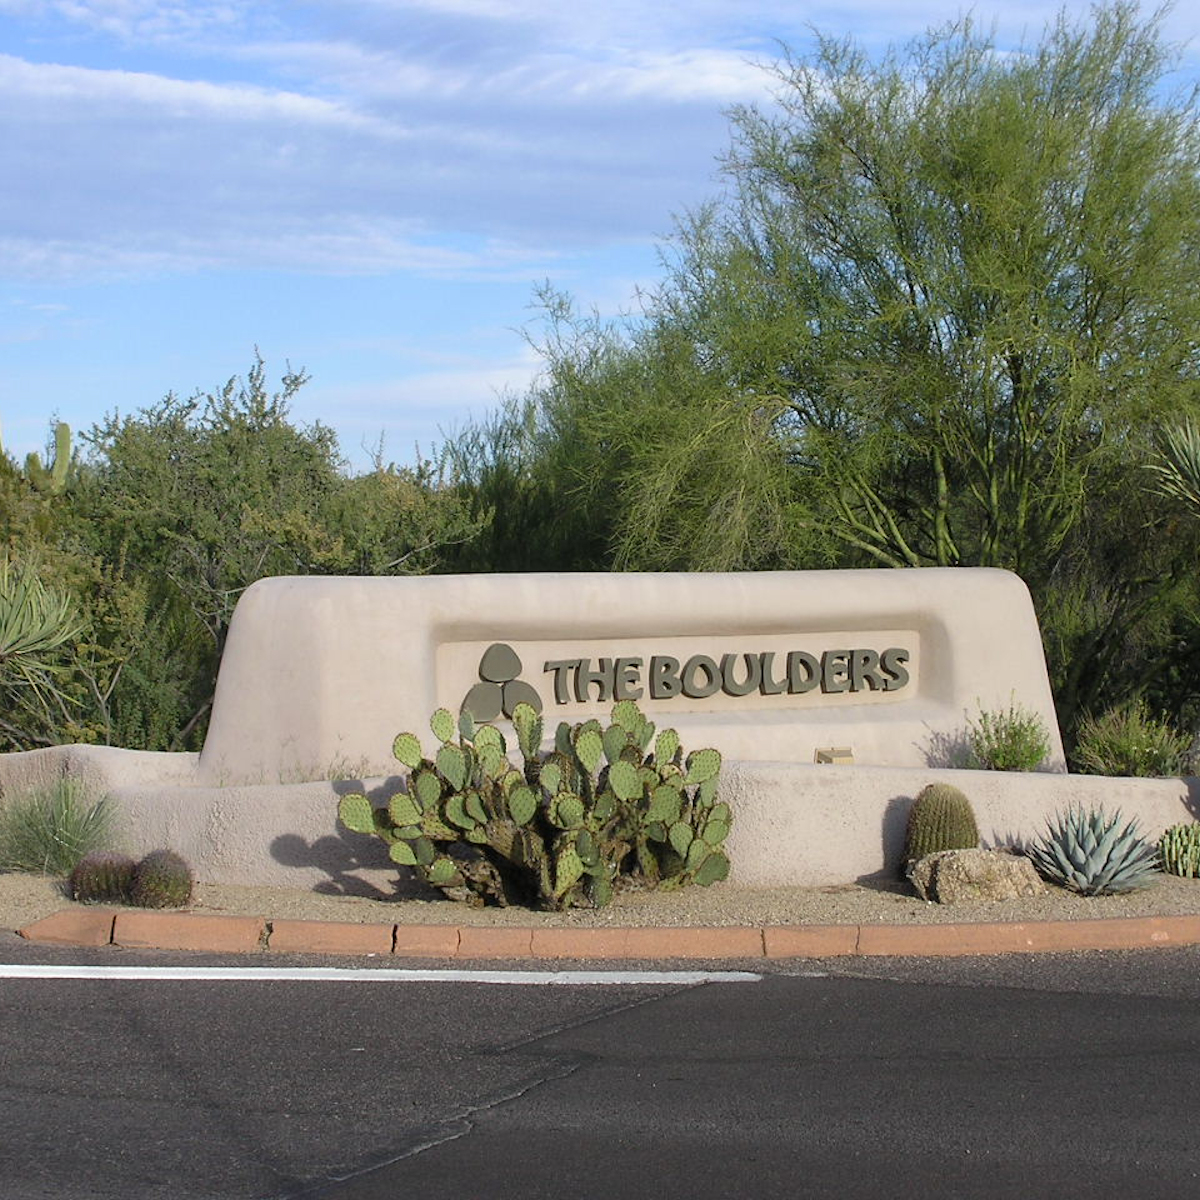 The Boulders Subdivision